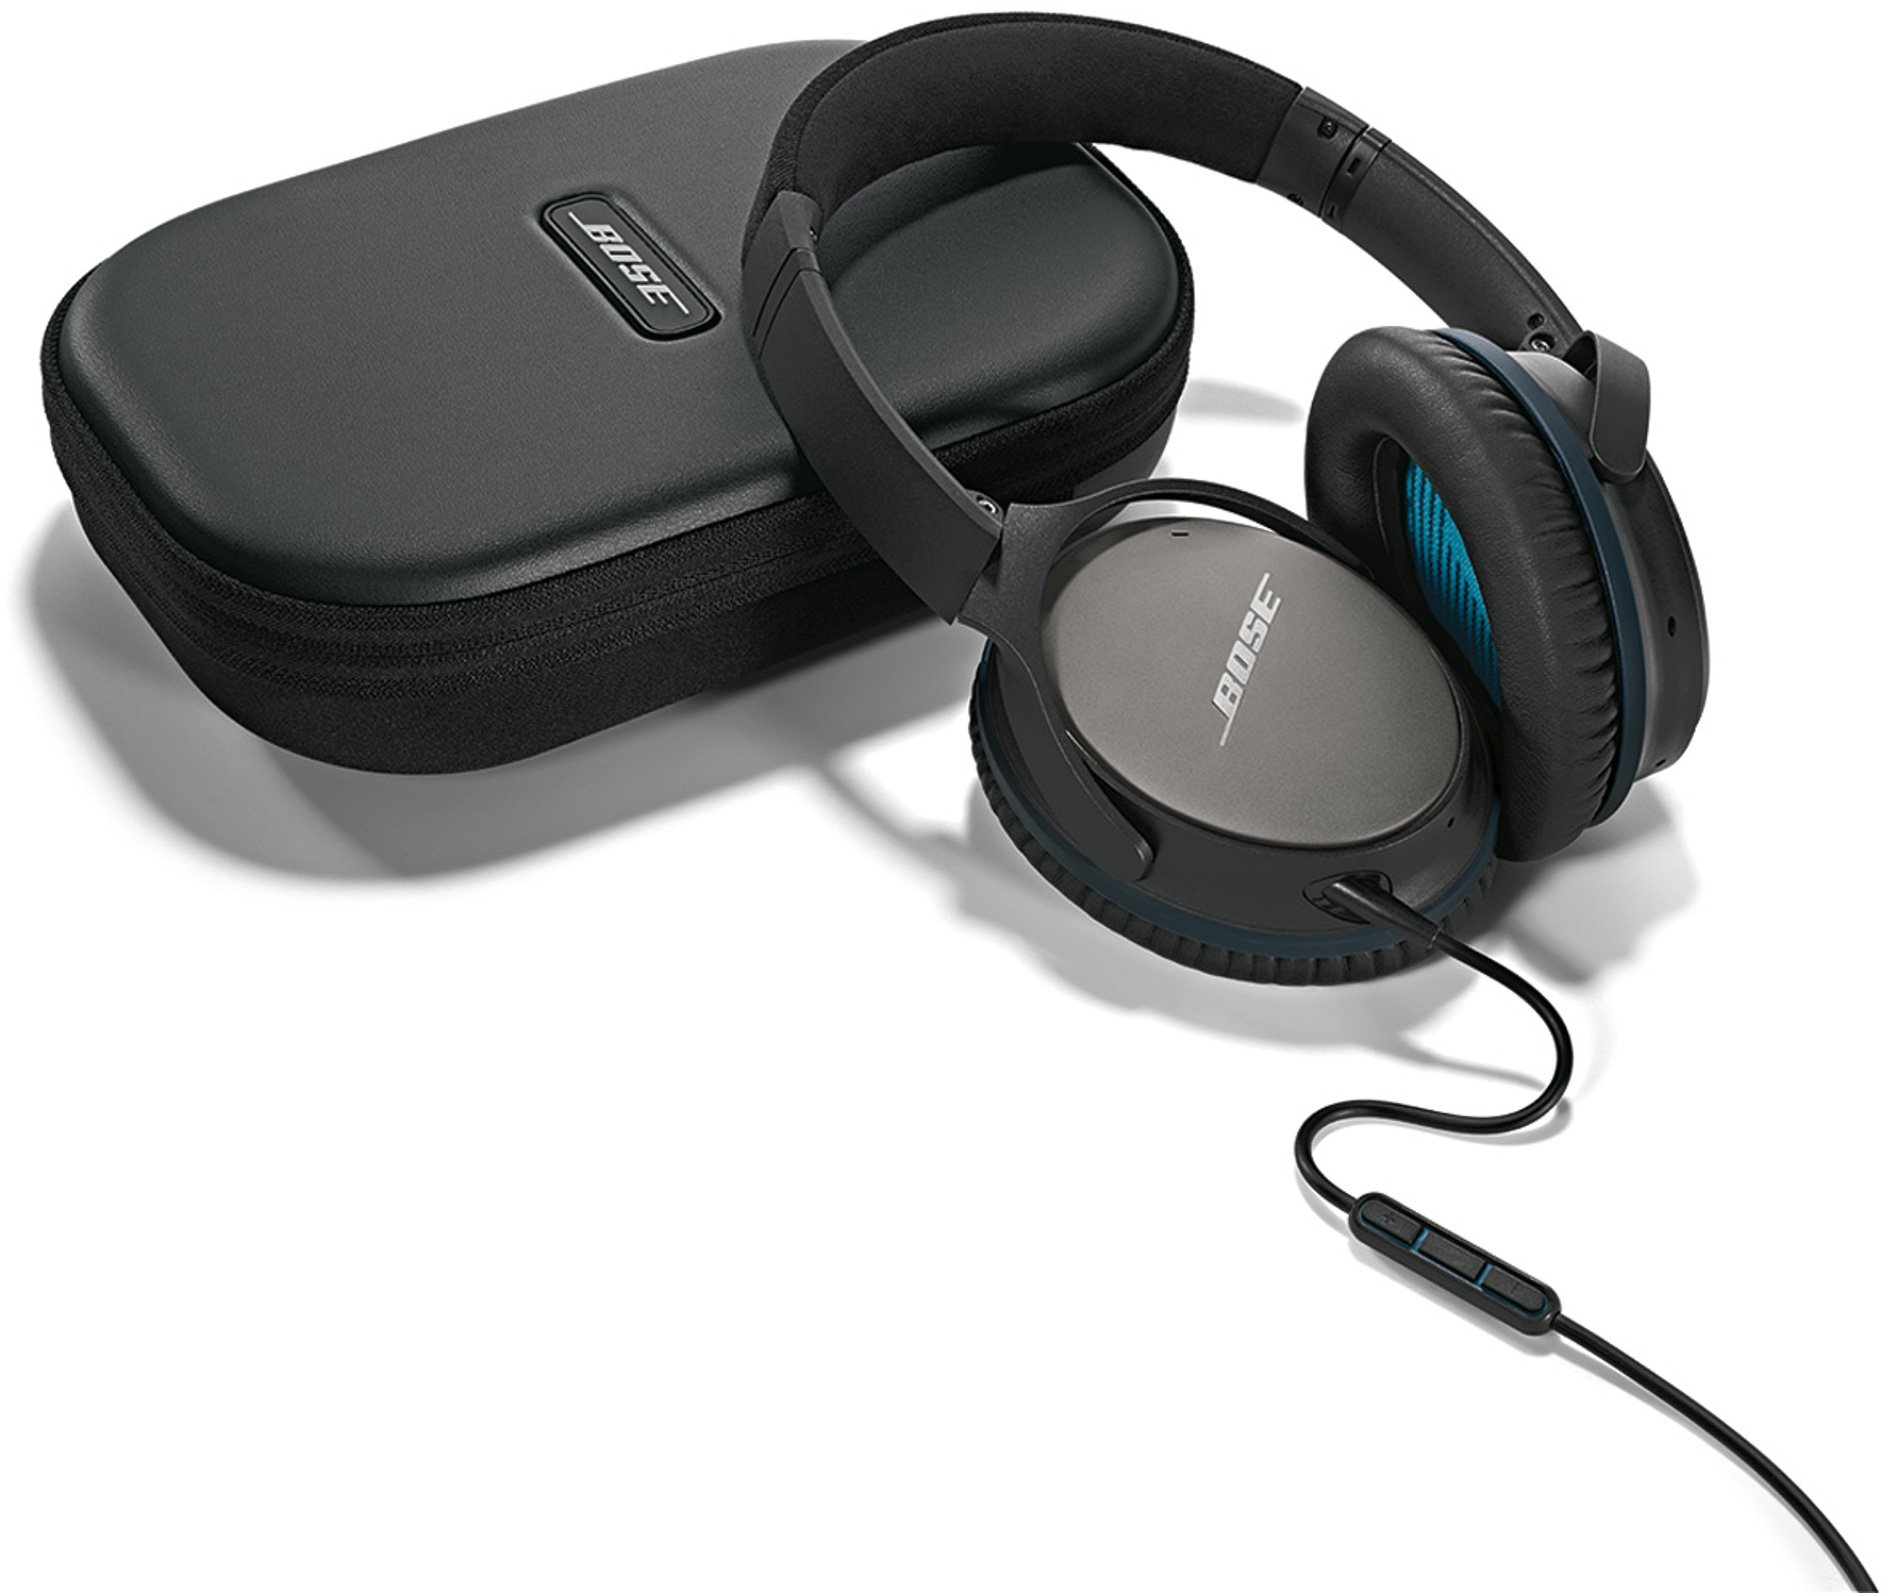 Bose QuietComfort 25 Acoustic Noise Cancelling Headphones for Apple devices - Black (wired, 3.5mm) by Bose (Image #15)